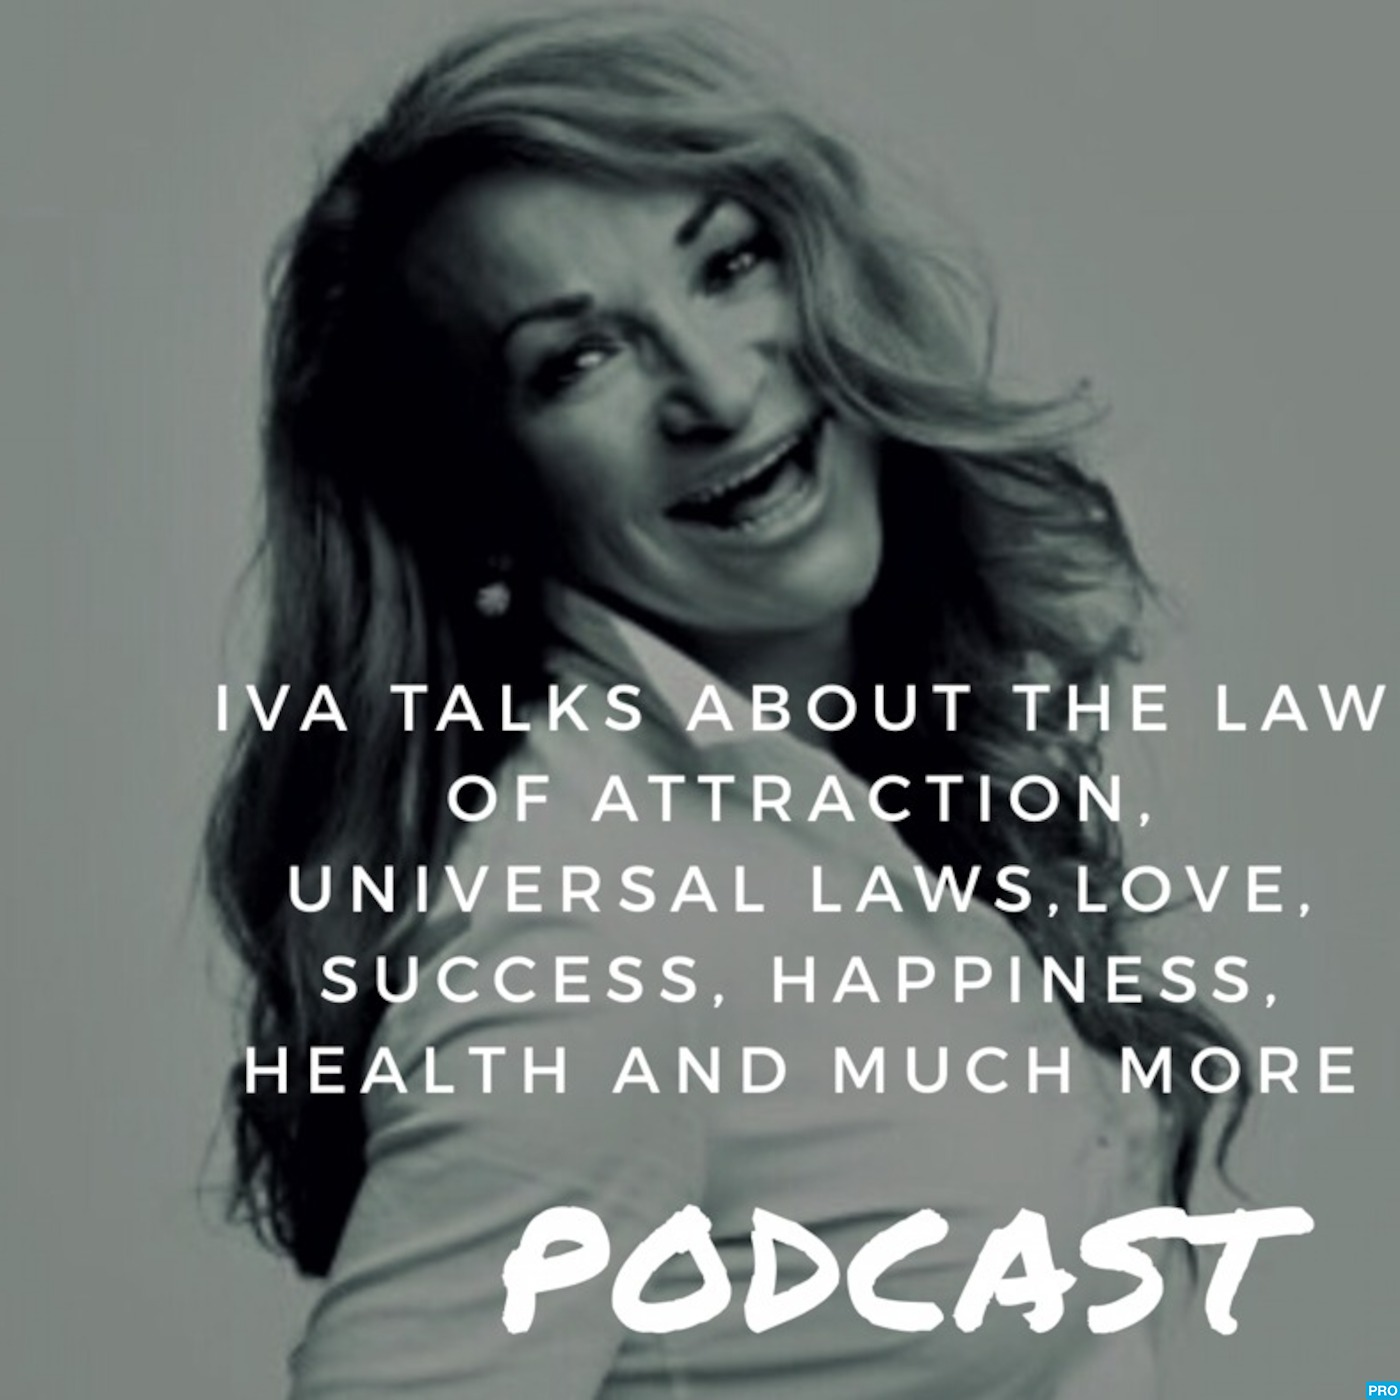 Iva talks about the law of attraction and more